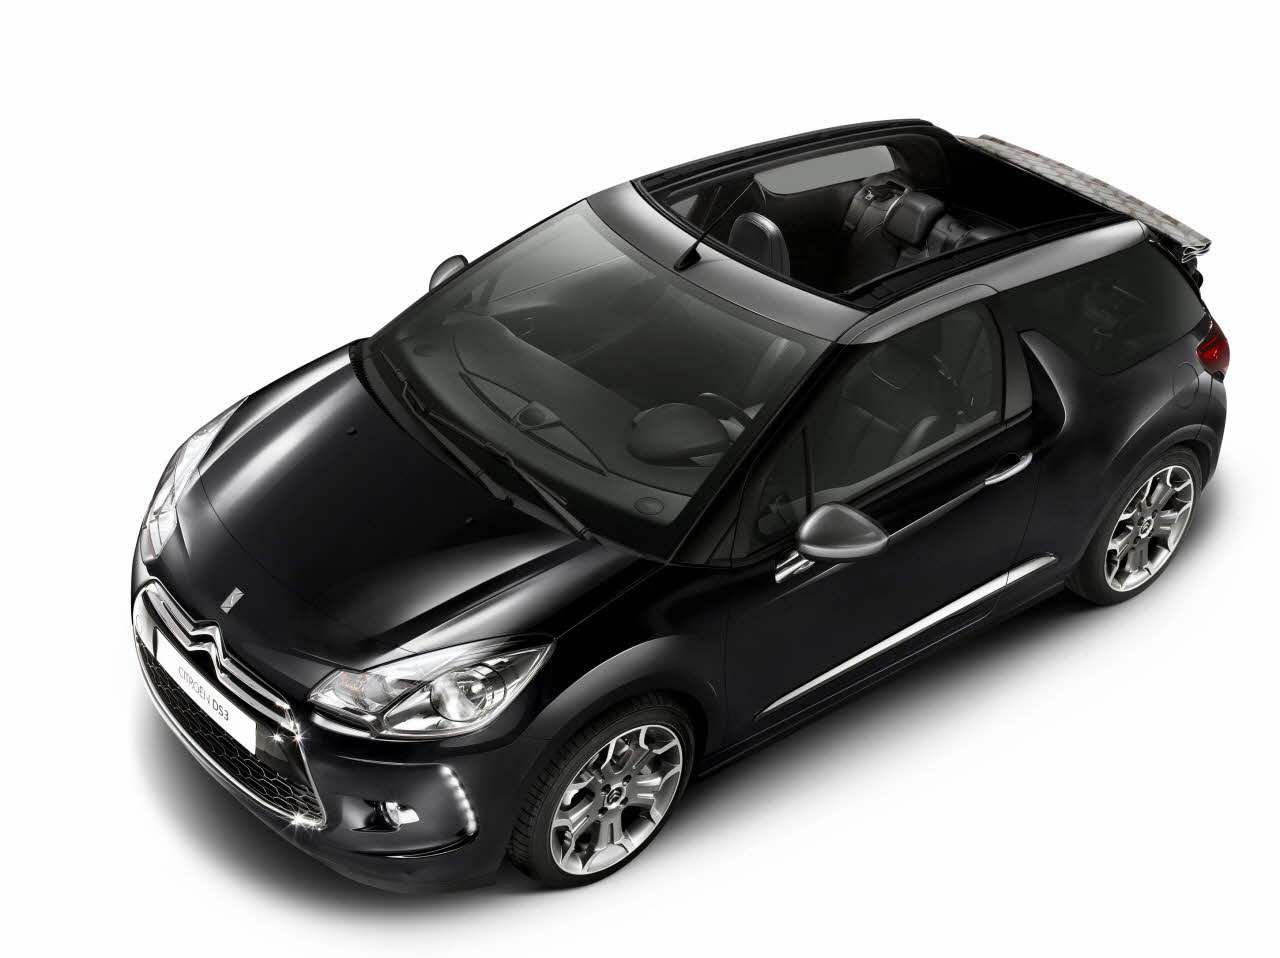 citroen ds3 cabrio essais fiabilit avis photos prix. Black Bedroom Furniture Sets. Home Design Ideas